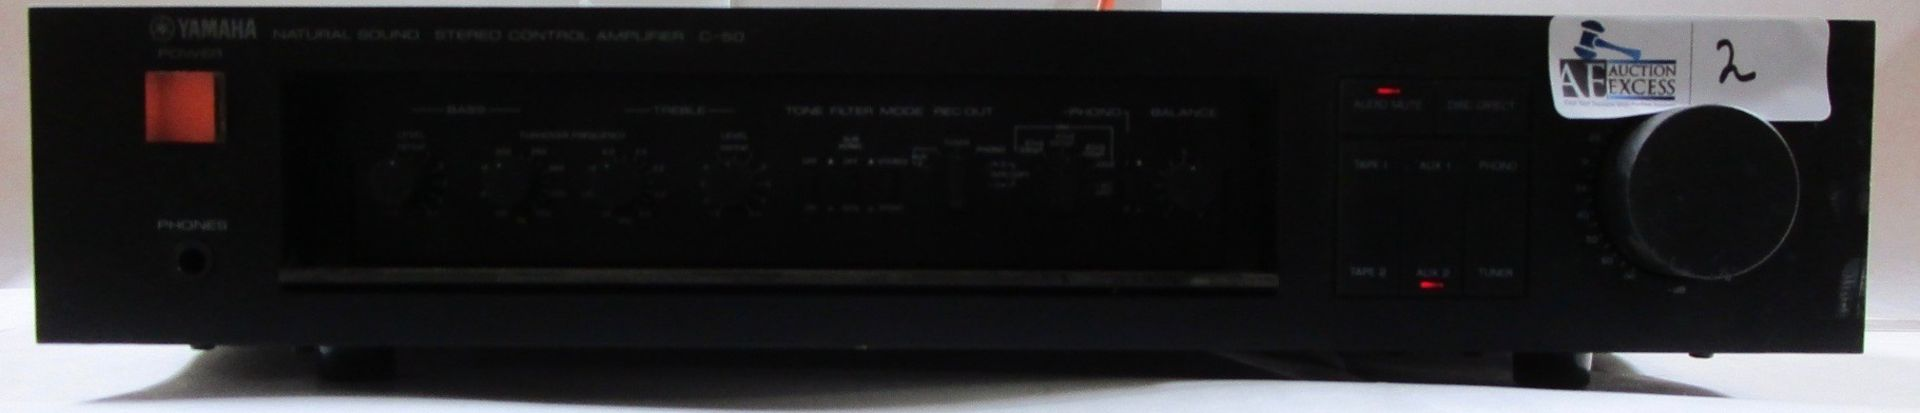 Lot 2 - YAMAHA C50 PREAMP